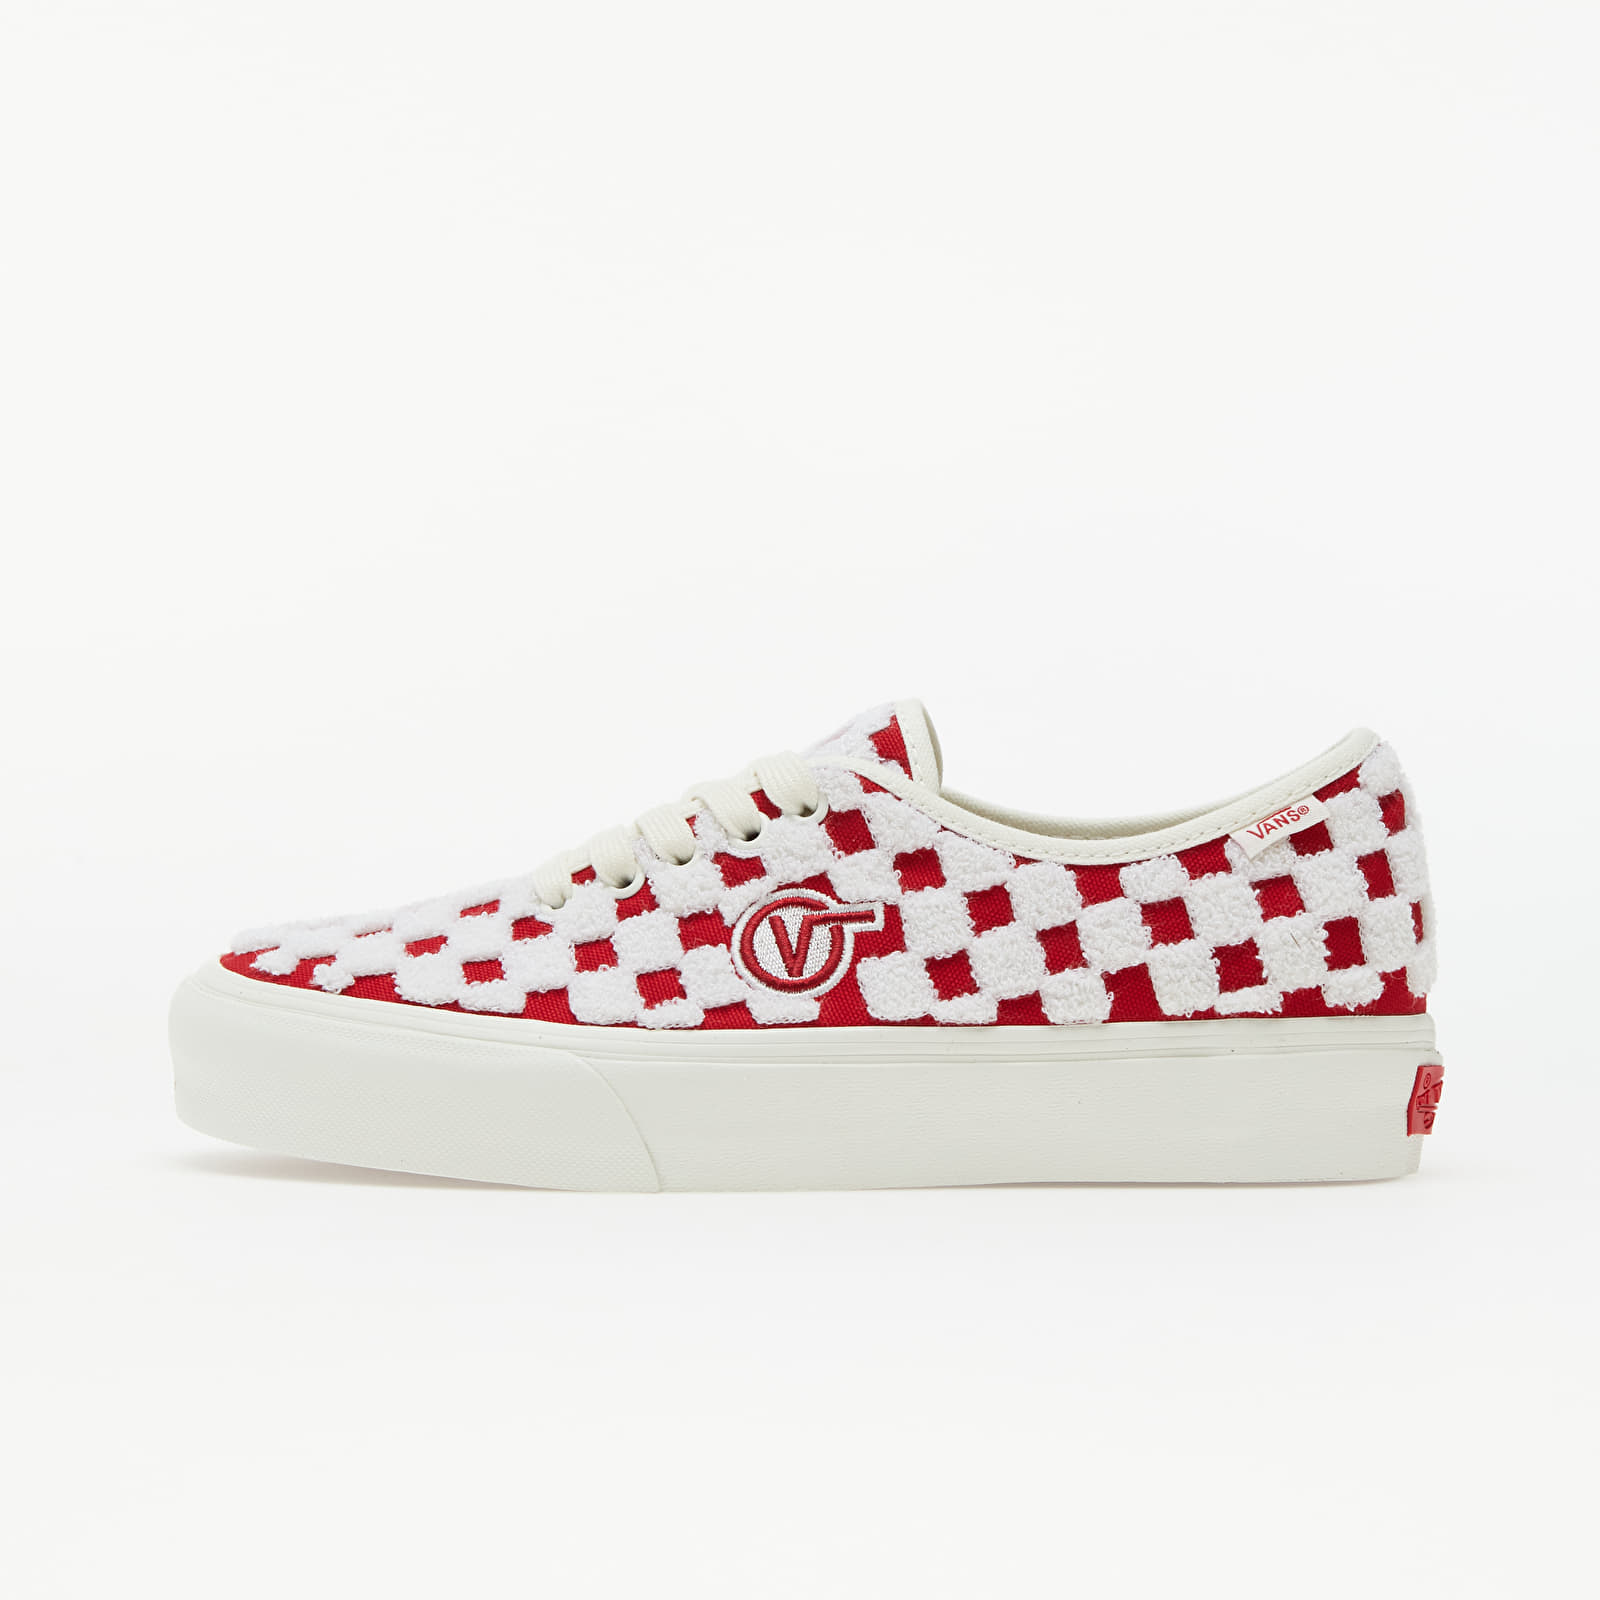 Vans Vault Authentic One Piece LX (Embroidered) Racing Red/ Marshmallo VN0A5HTG42A1